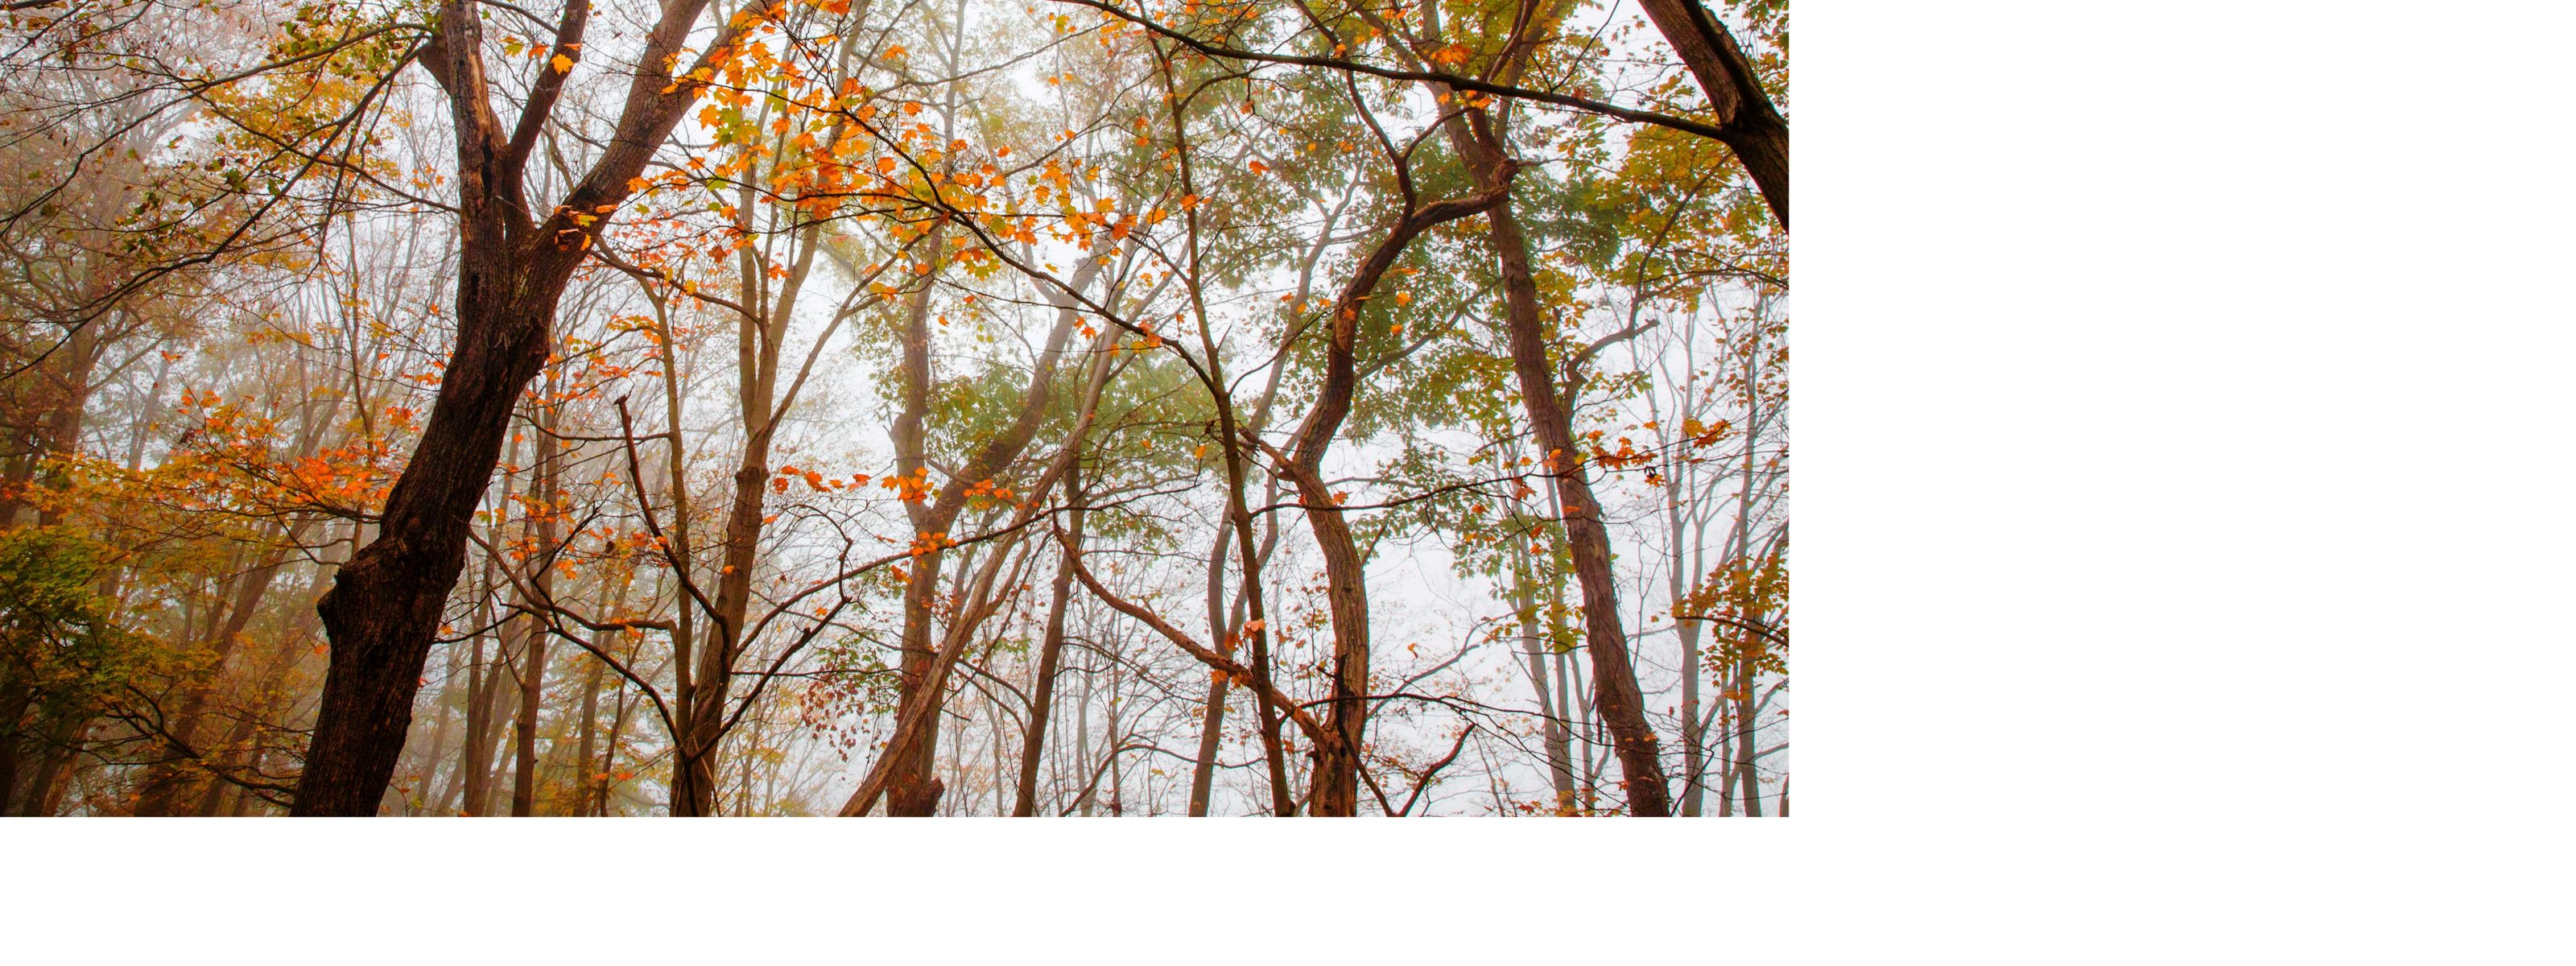 A canopy of orange leaves stand out against a gray sky.